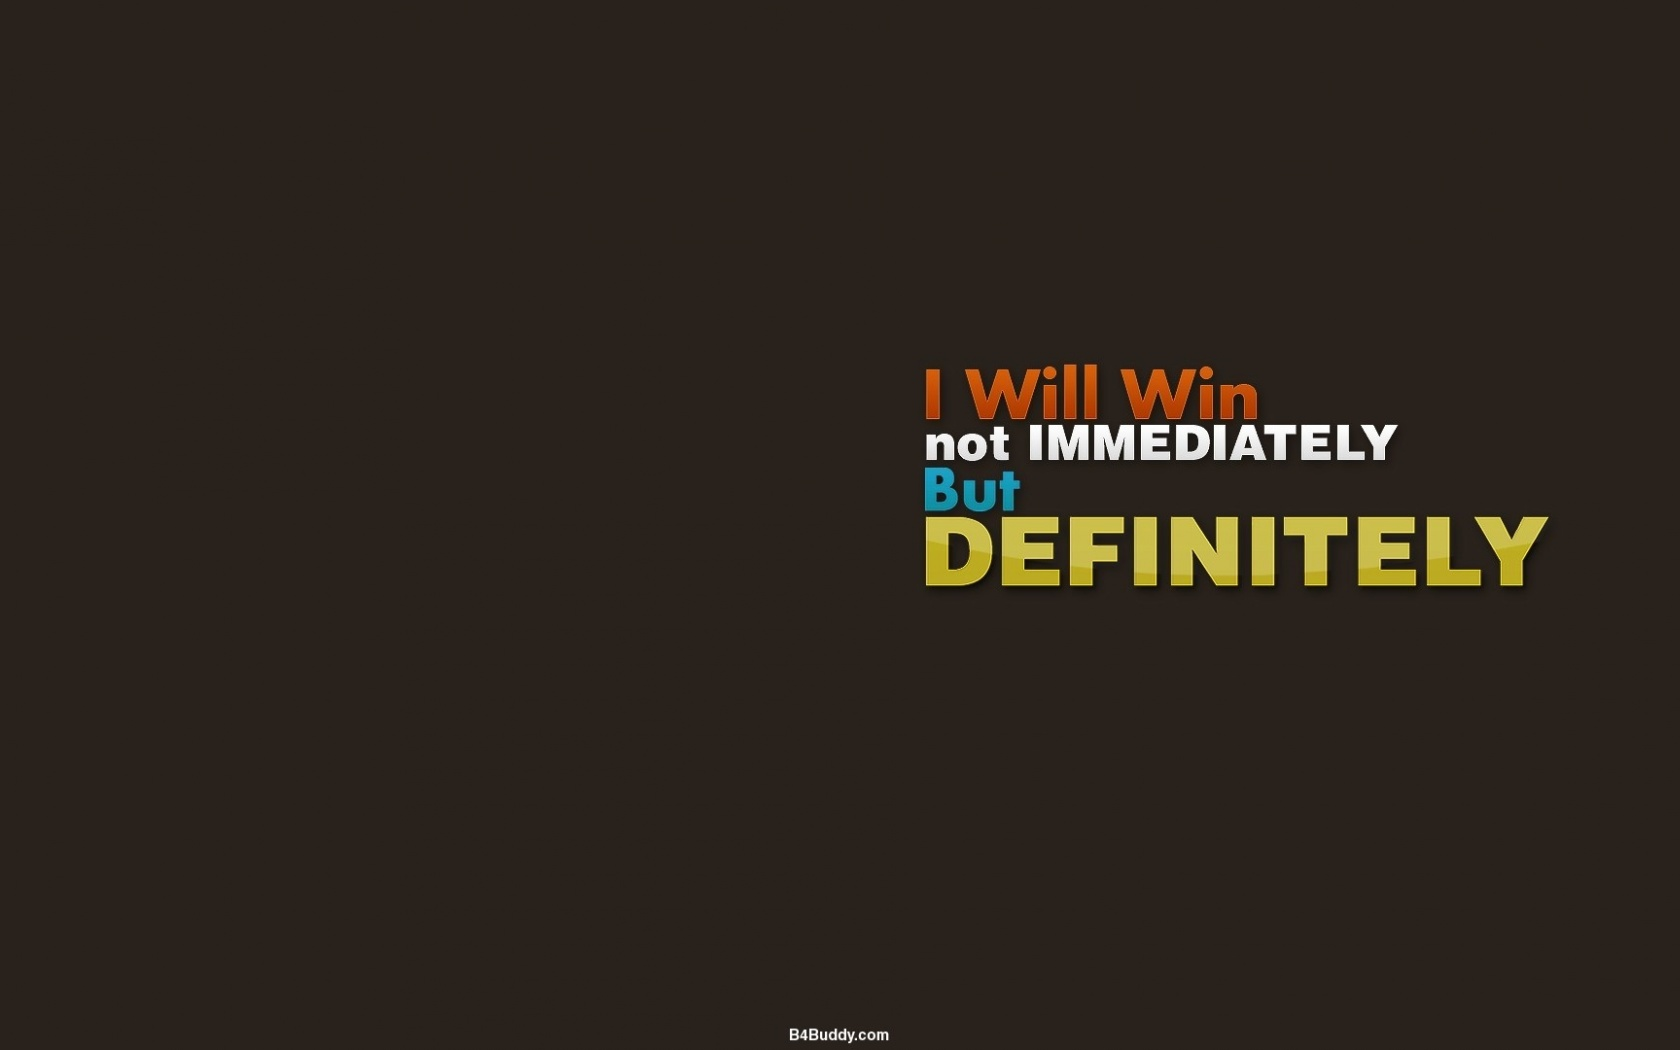 1680x1050 Motivational Quote Wallpaper desktop PC and Mac wallpaper